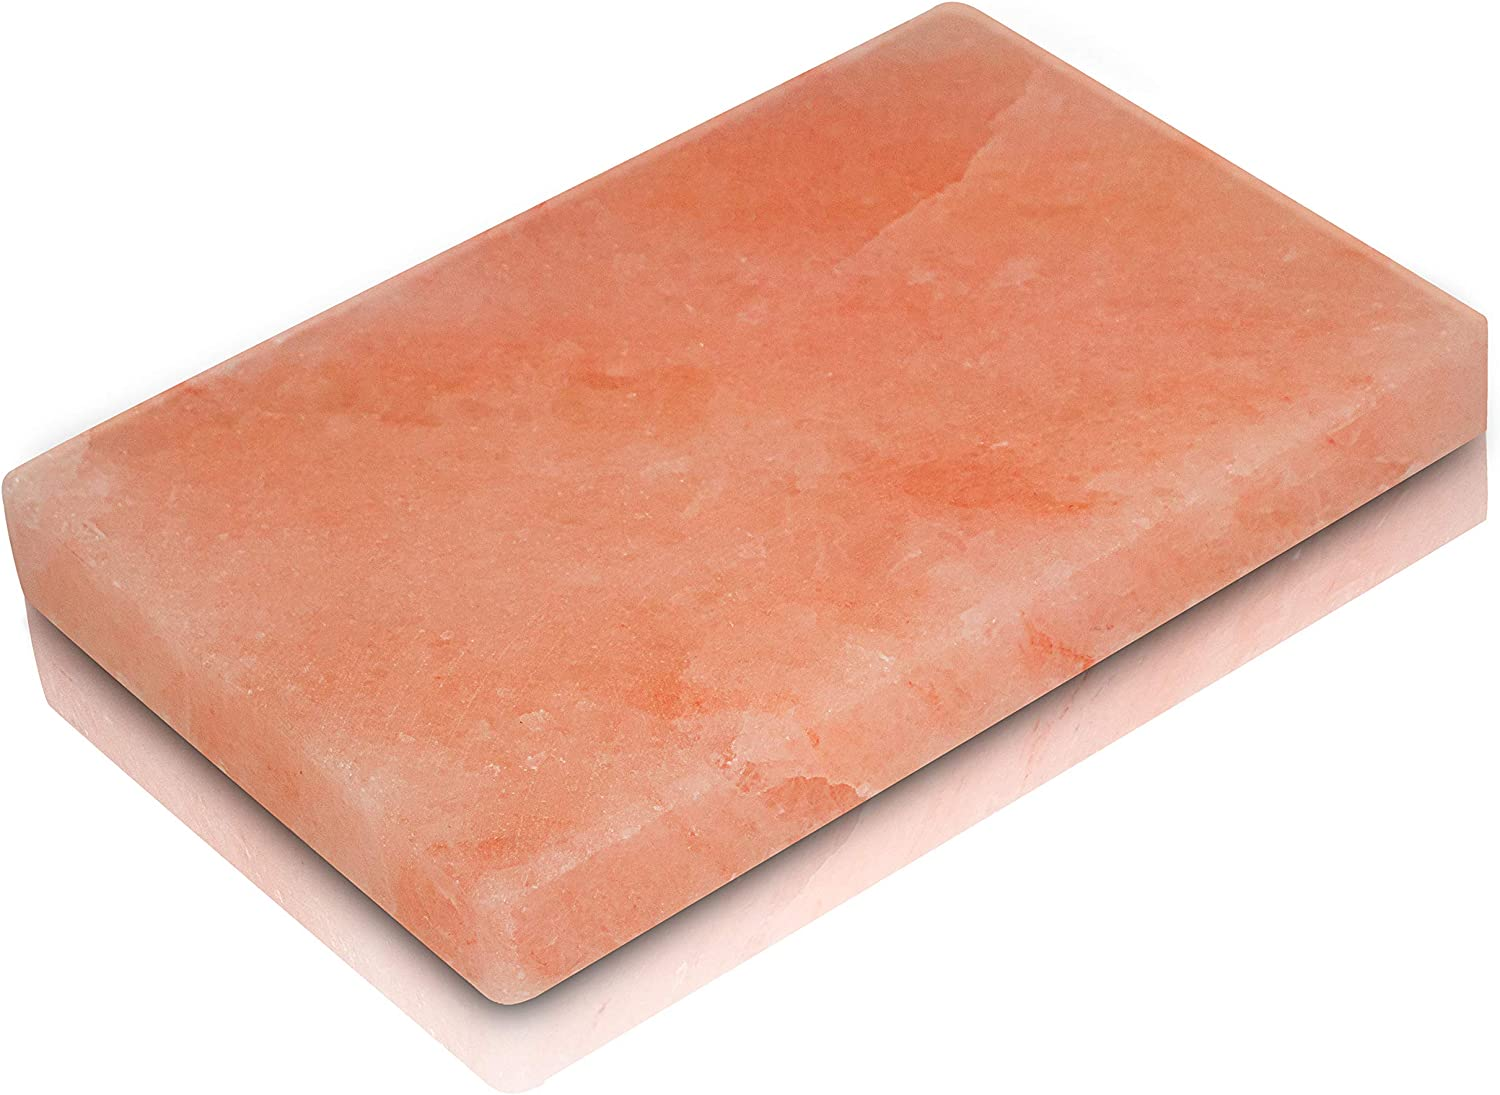 Spantik Himalayan Salt Block for Grilling Best Size 12